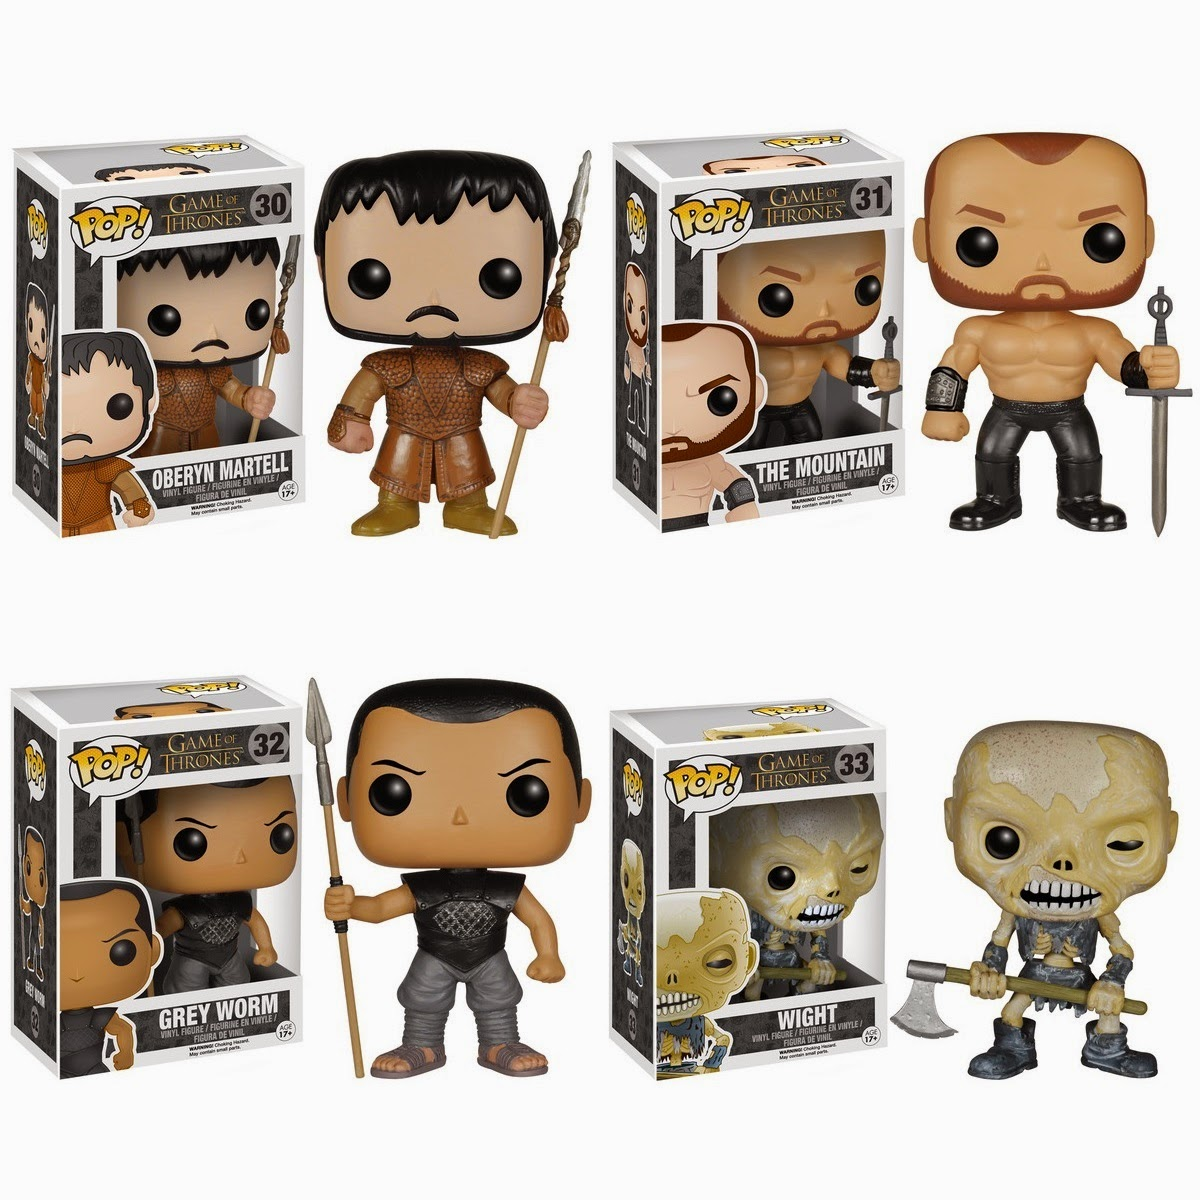 Game of Thrones Pop! Series 5 by Funko - Oberyn Martell, The Mountain, Grey Worm of the Unsullied & a Wight